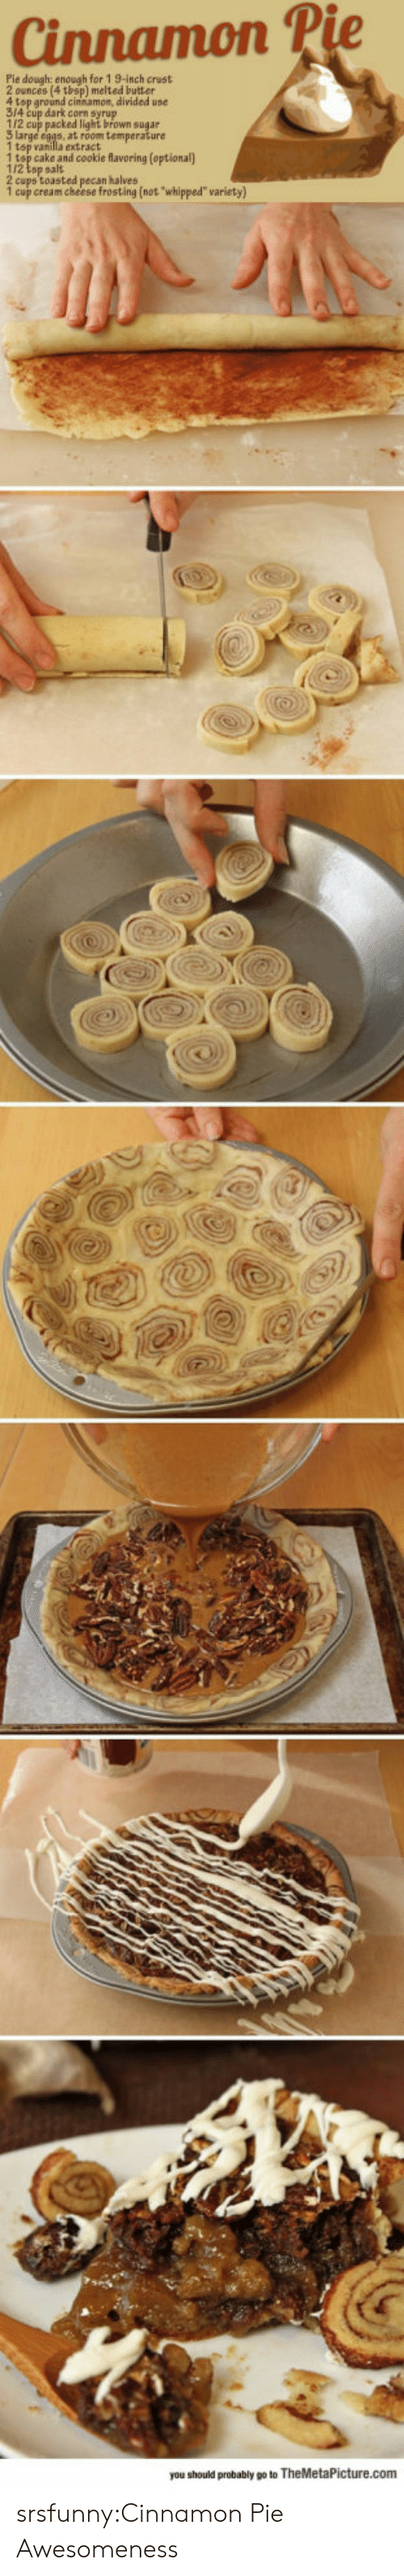 """frosting: Cinnamon P  Pie dough: enough for 1 9-inch crust  ) melted butter  4 top ground cinsamon, divided use  314 cup dark corn syrup  112 cup packed light brown sugar  1 tsp vanilla extract  1 tsp cake and cookie flavoring (optional)  1/2 tsp salt  2 cups toasted pecan halves  1 cup cream cheese frosting (not whipped"""" variety)  you should probably go to TheMetaPicture.com srsfunny:Cinnamon Pie Awesomeness"""